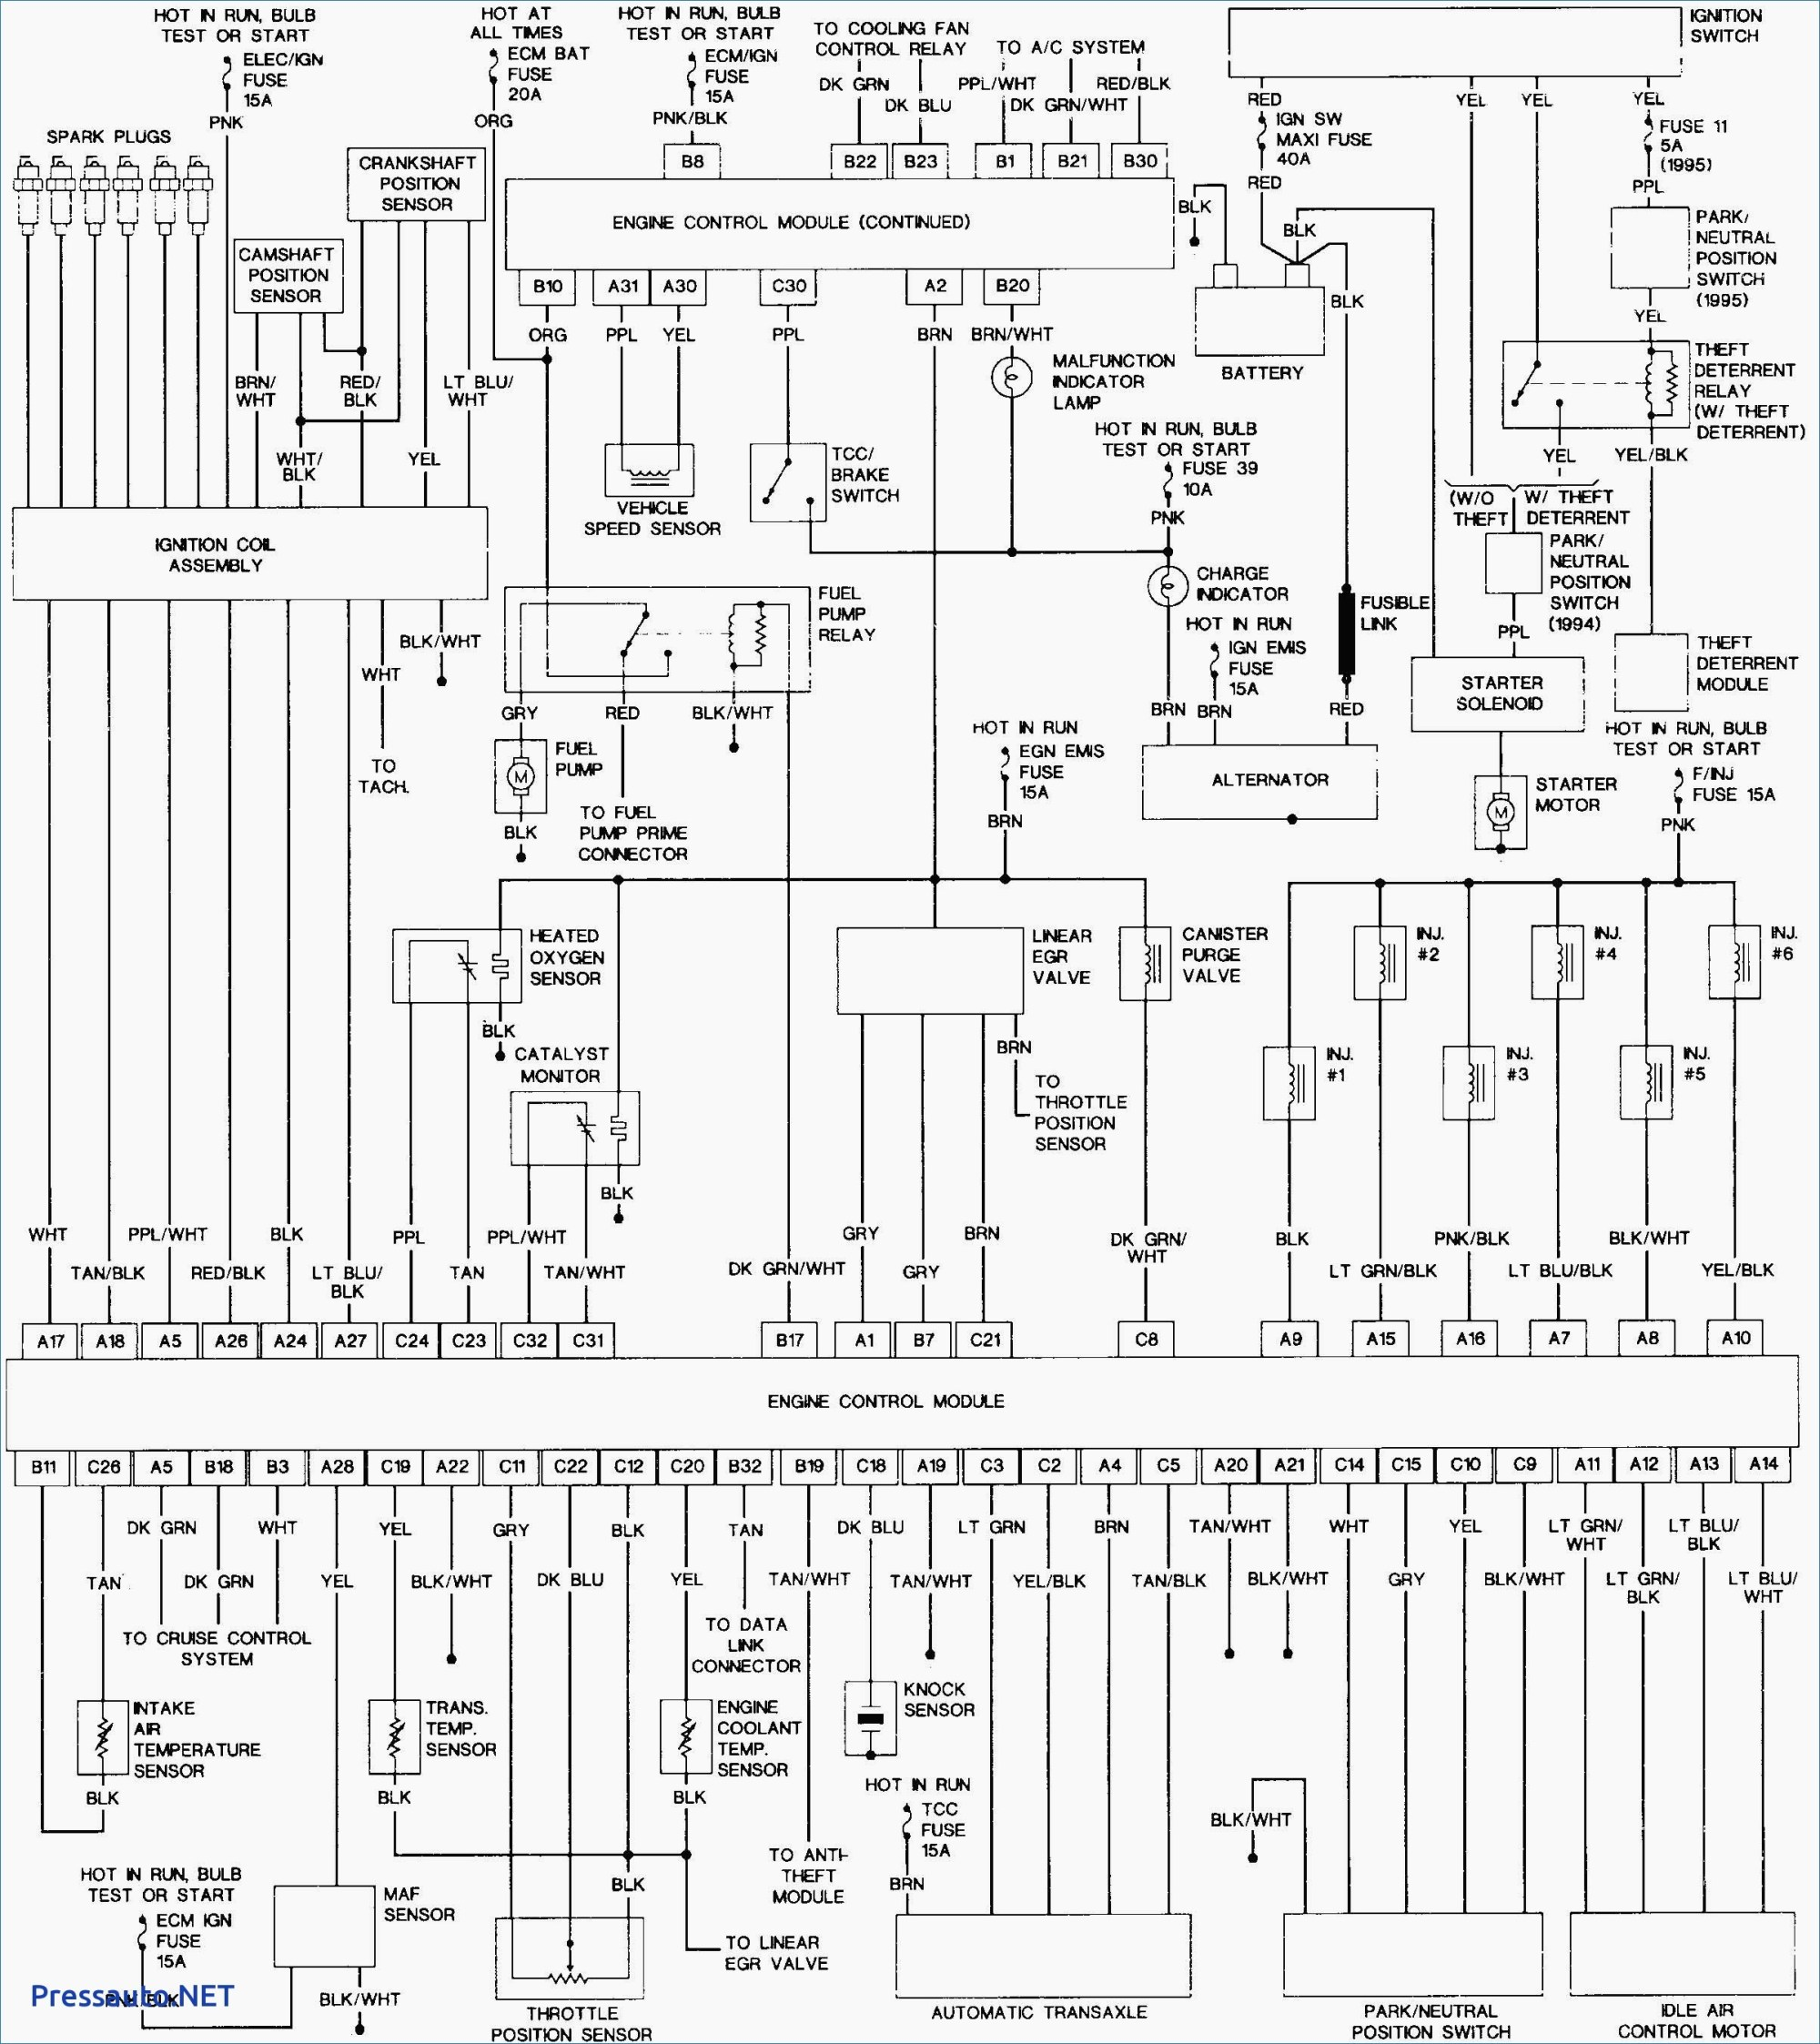 hight resolution of 2001 tdi engine diagram wiring diagram used 2011 vw jetta tdi fuse box diagram